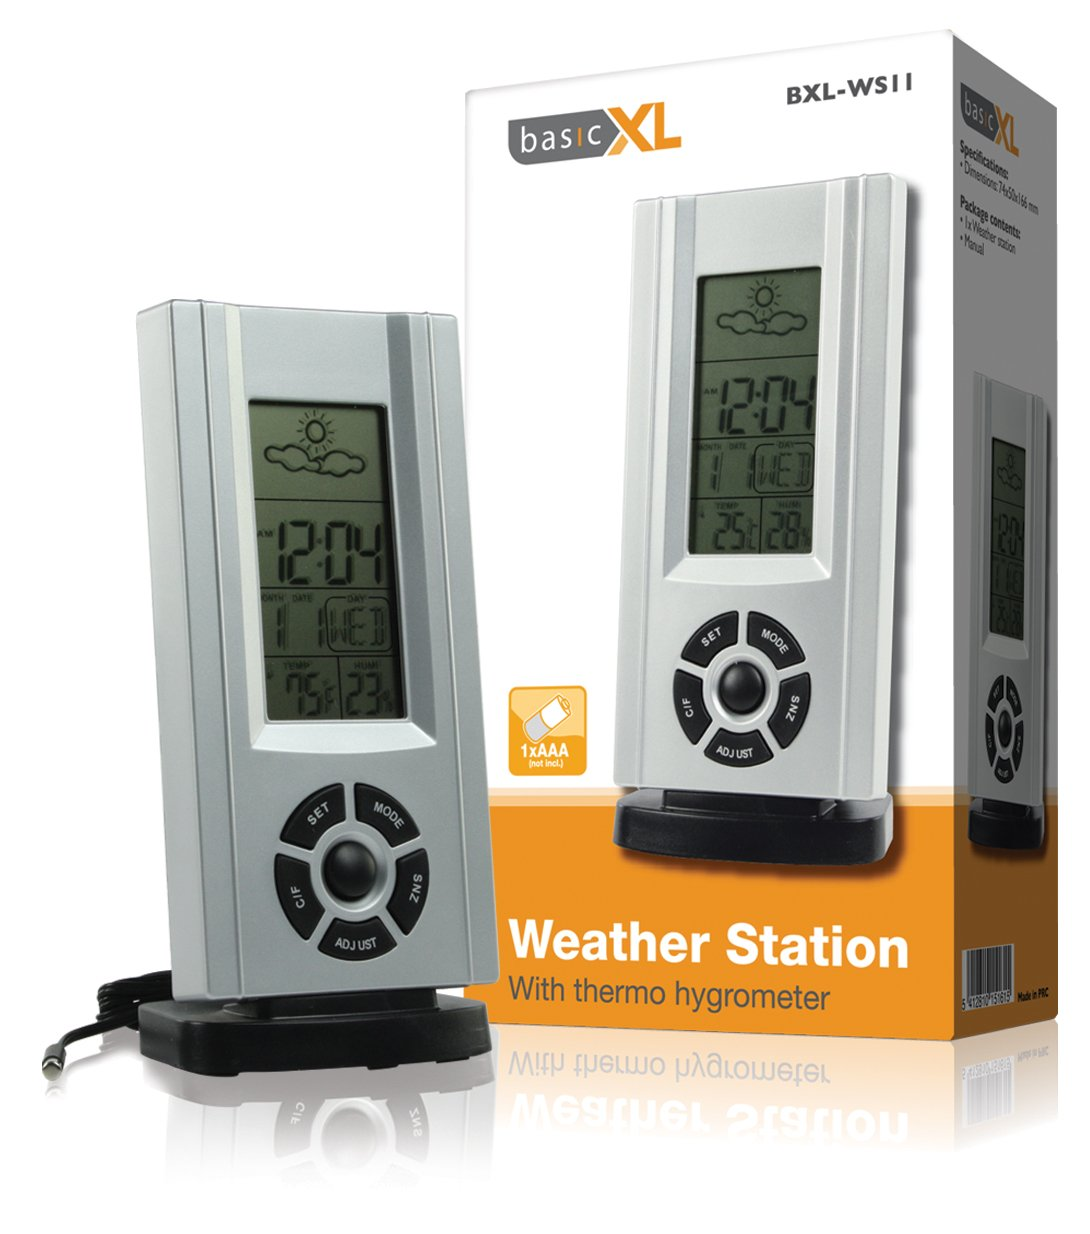 basicXL Weather station with thermo hygrometer [BXL-WS11]